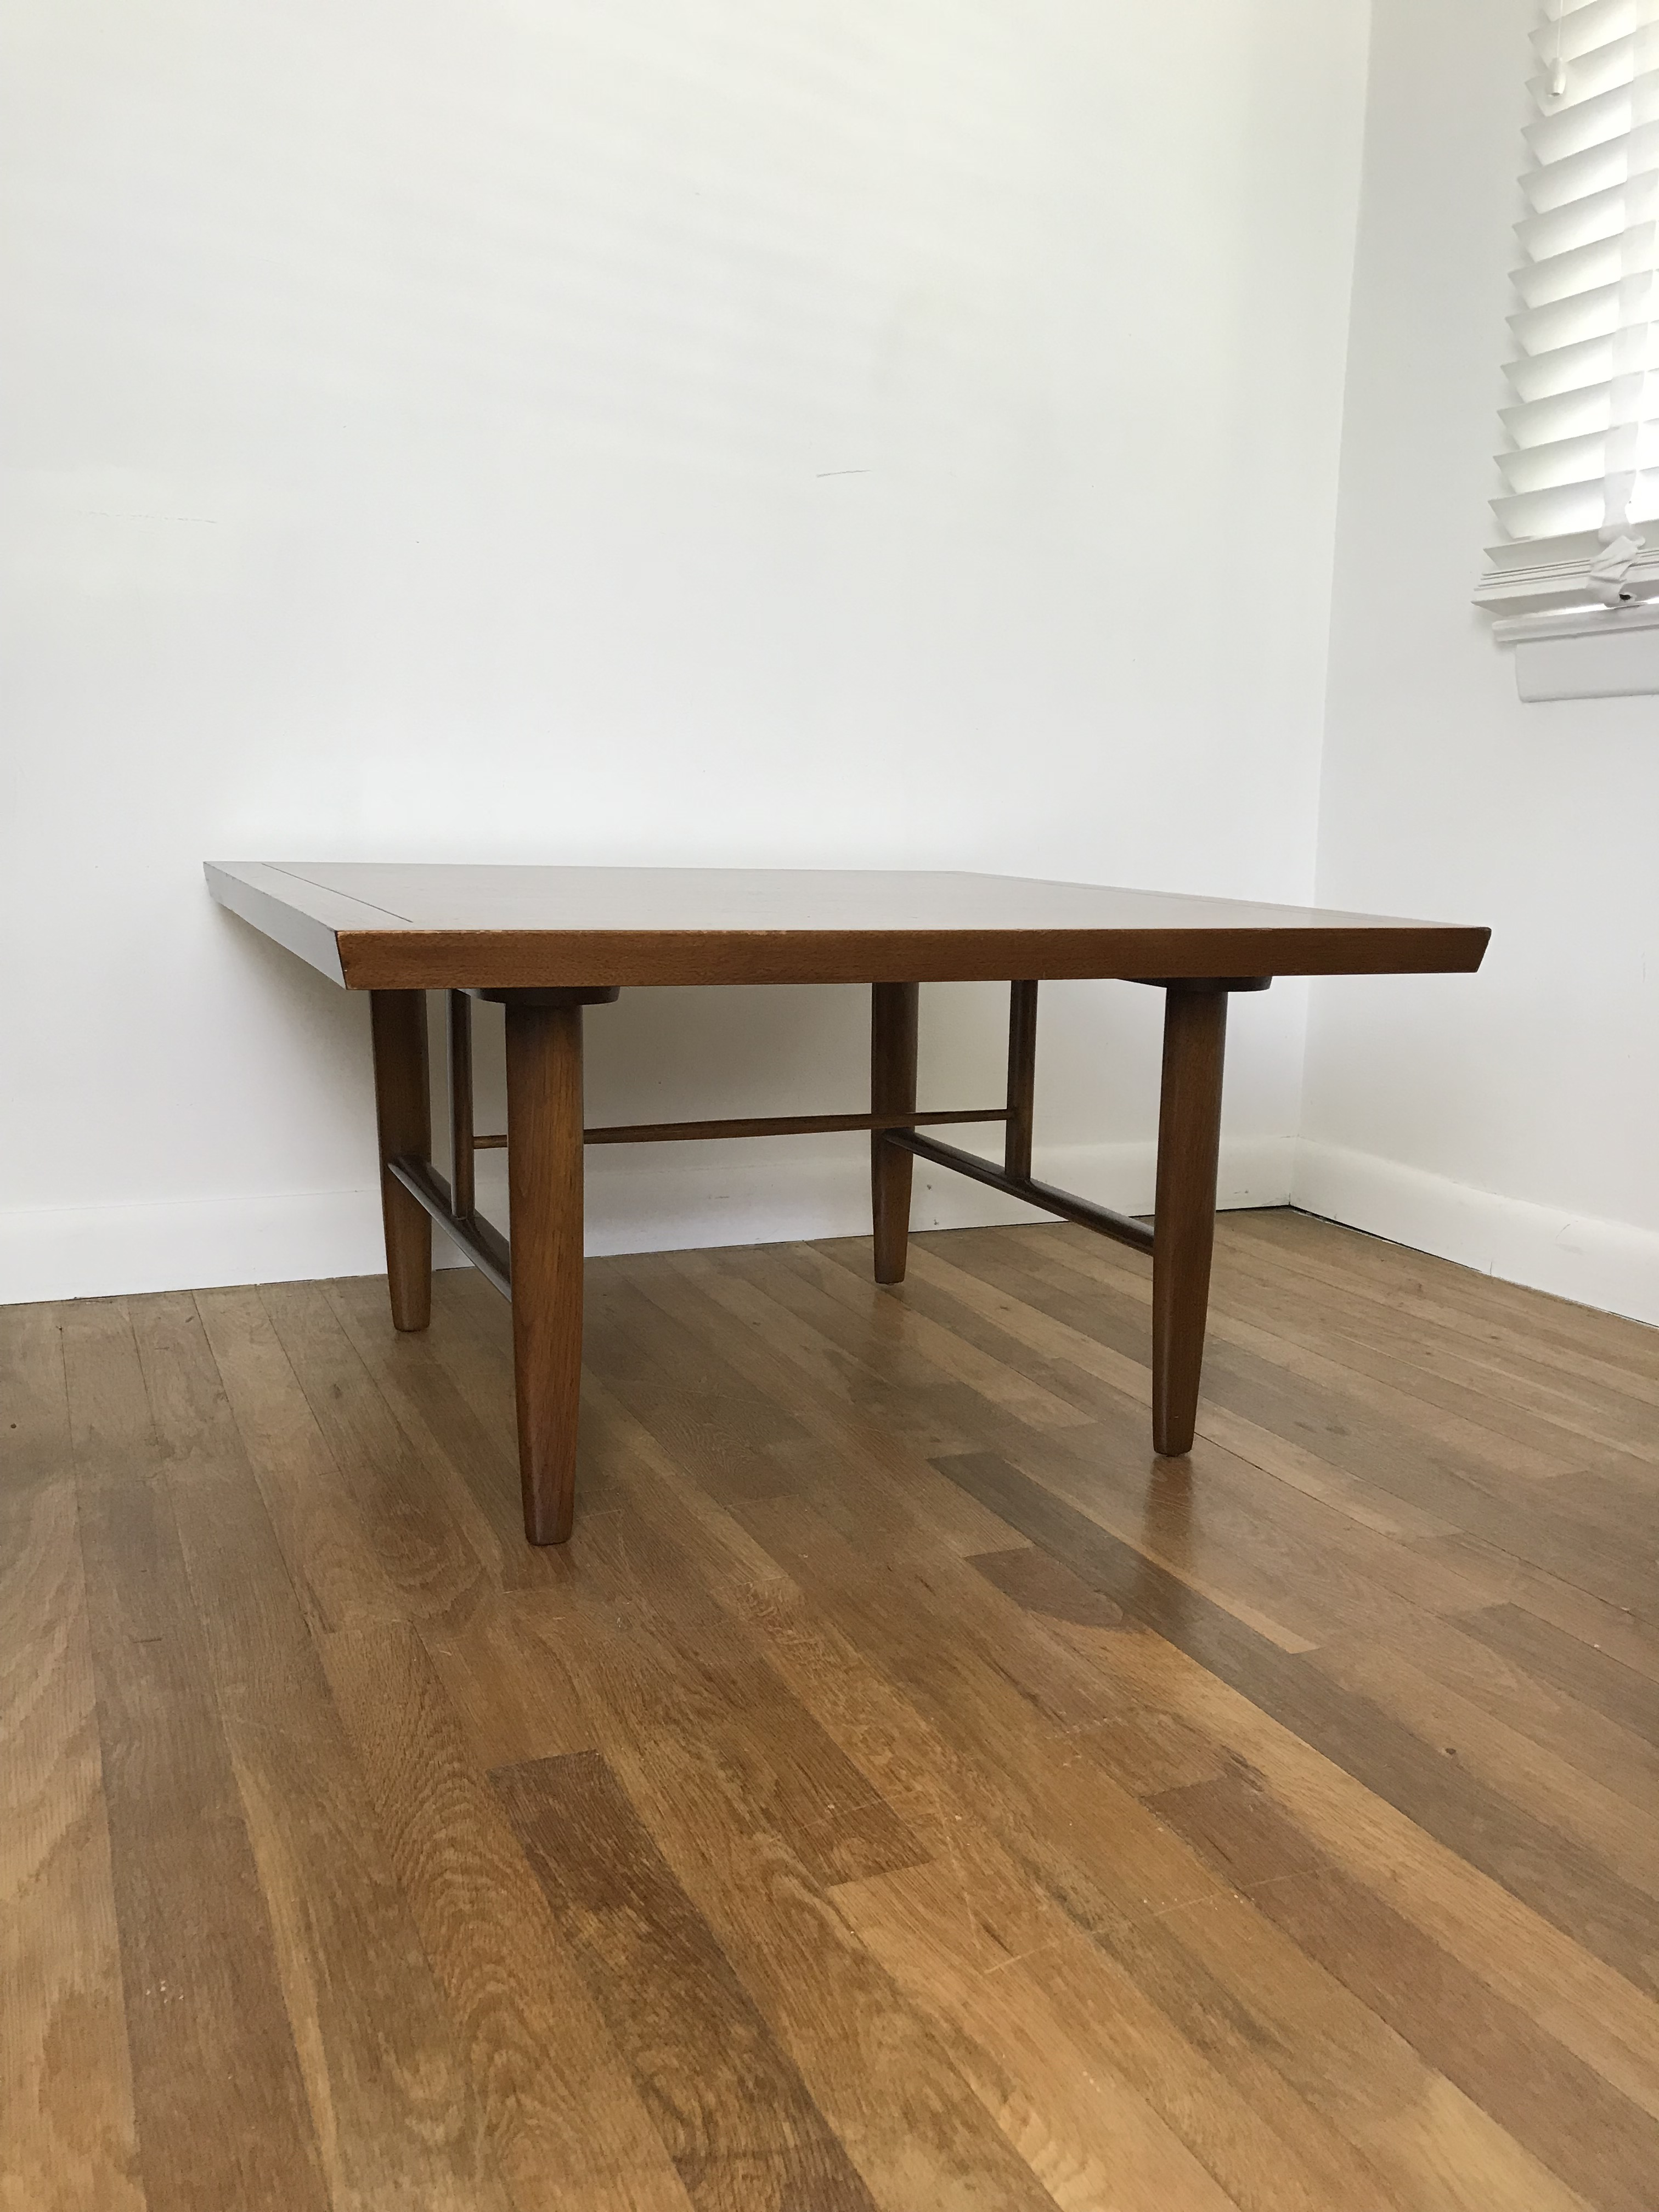 A Cocktail / Coffee Table Designed By George Nakashima Which Was Part The  Origins Group For